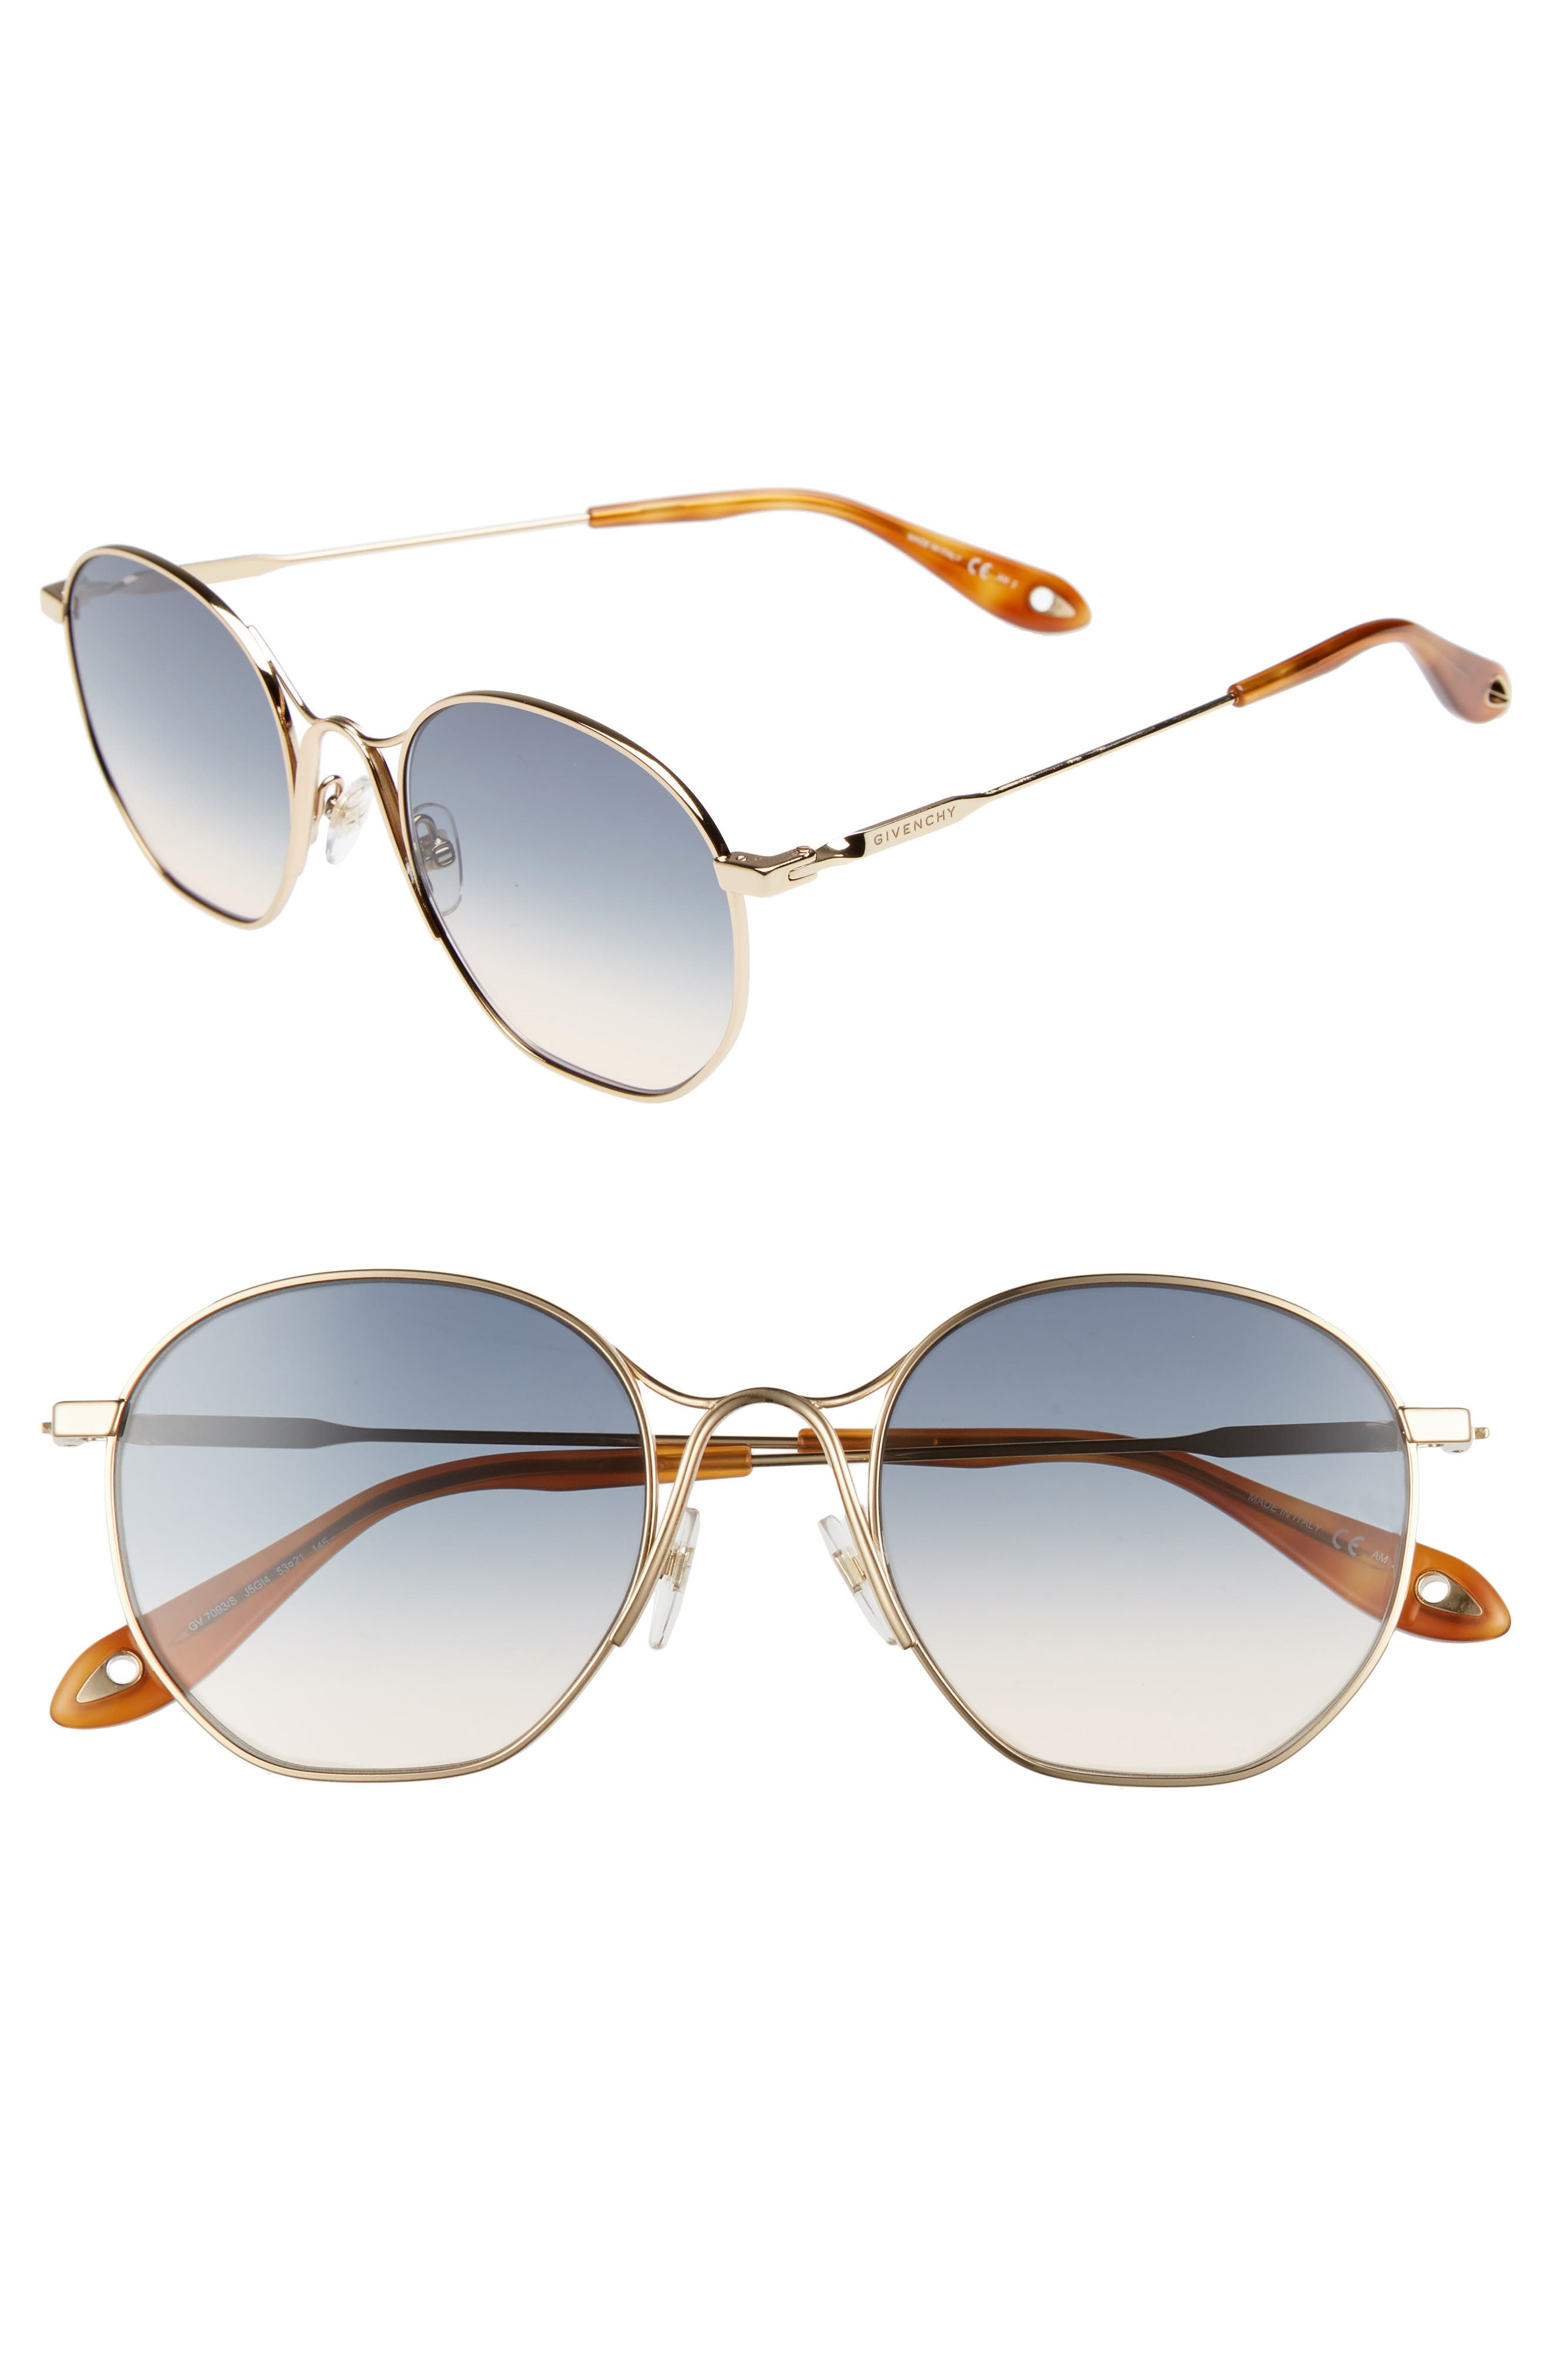 53mm Squared Round Metal Sunglasses,                         Main,                         color, GOLD